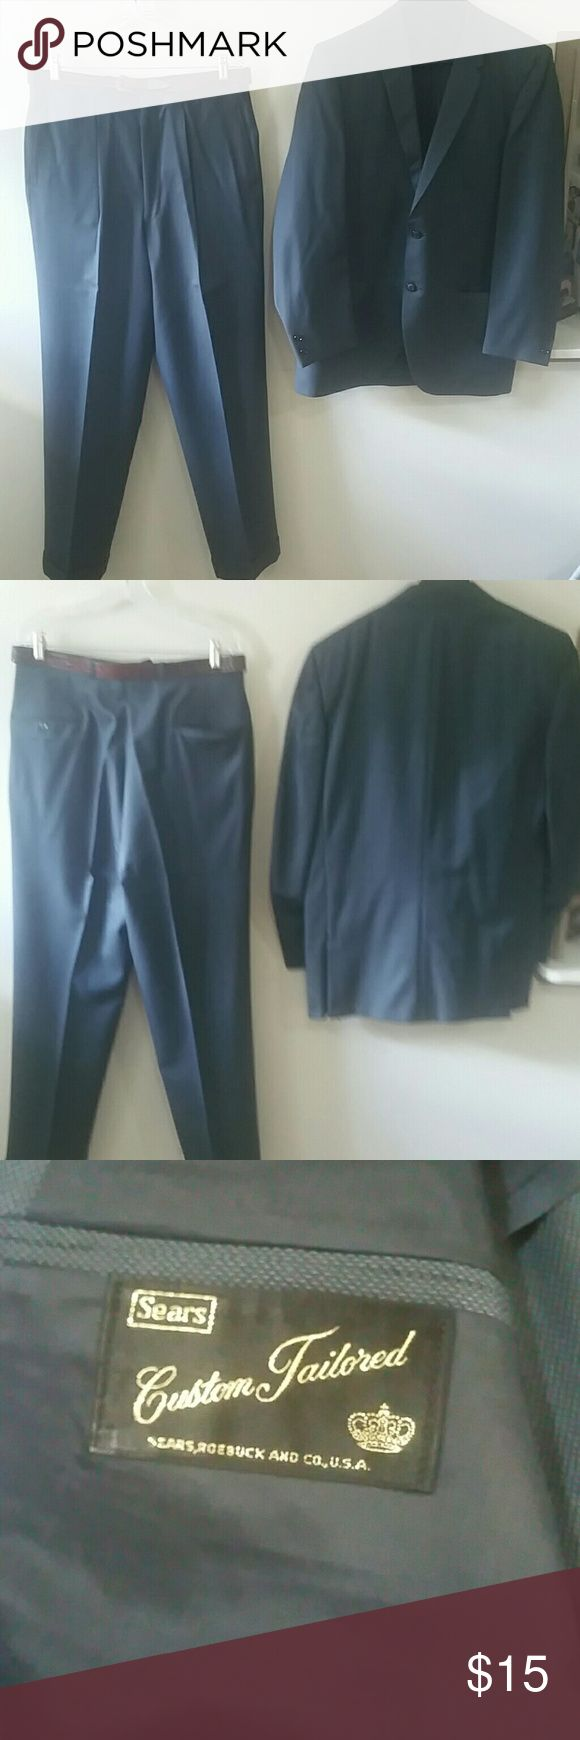 MEN'S PANTS SUIT MEN'S  CUSTOM TAILORED PANTS SUIT, SEARS POEBUCK AND CO. U.S.A. JACKET SLEEVES 25IN., SHOULDER 18IN., NECKLINE TO HEM 301/2 IN., PANTS waist 34 IN., INSEAM 32IN., TURQUOISE  BLUE SEARS AND ROEBUCK  Suits & Blazers Suits